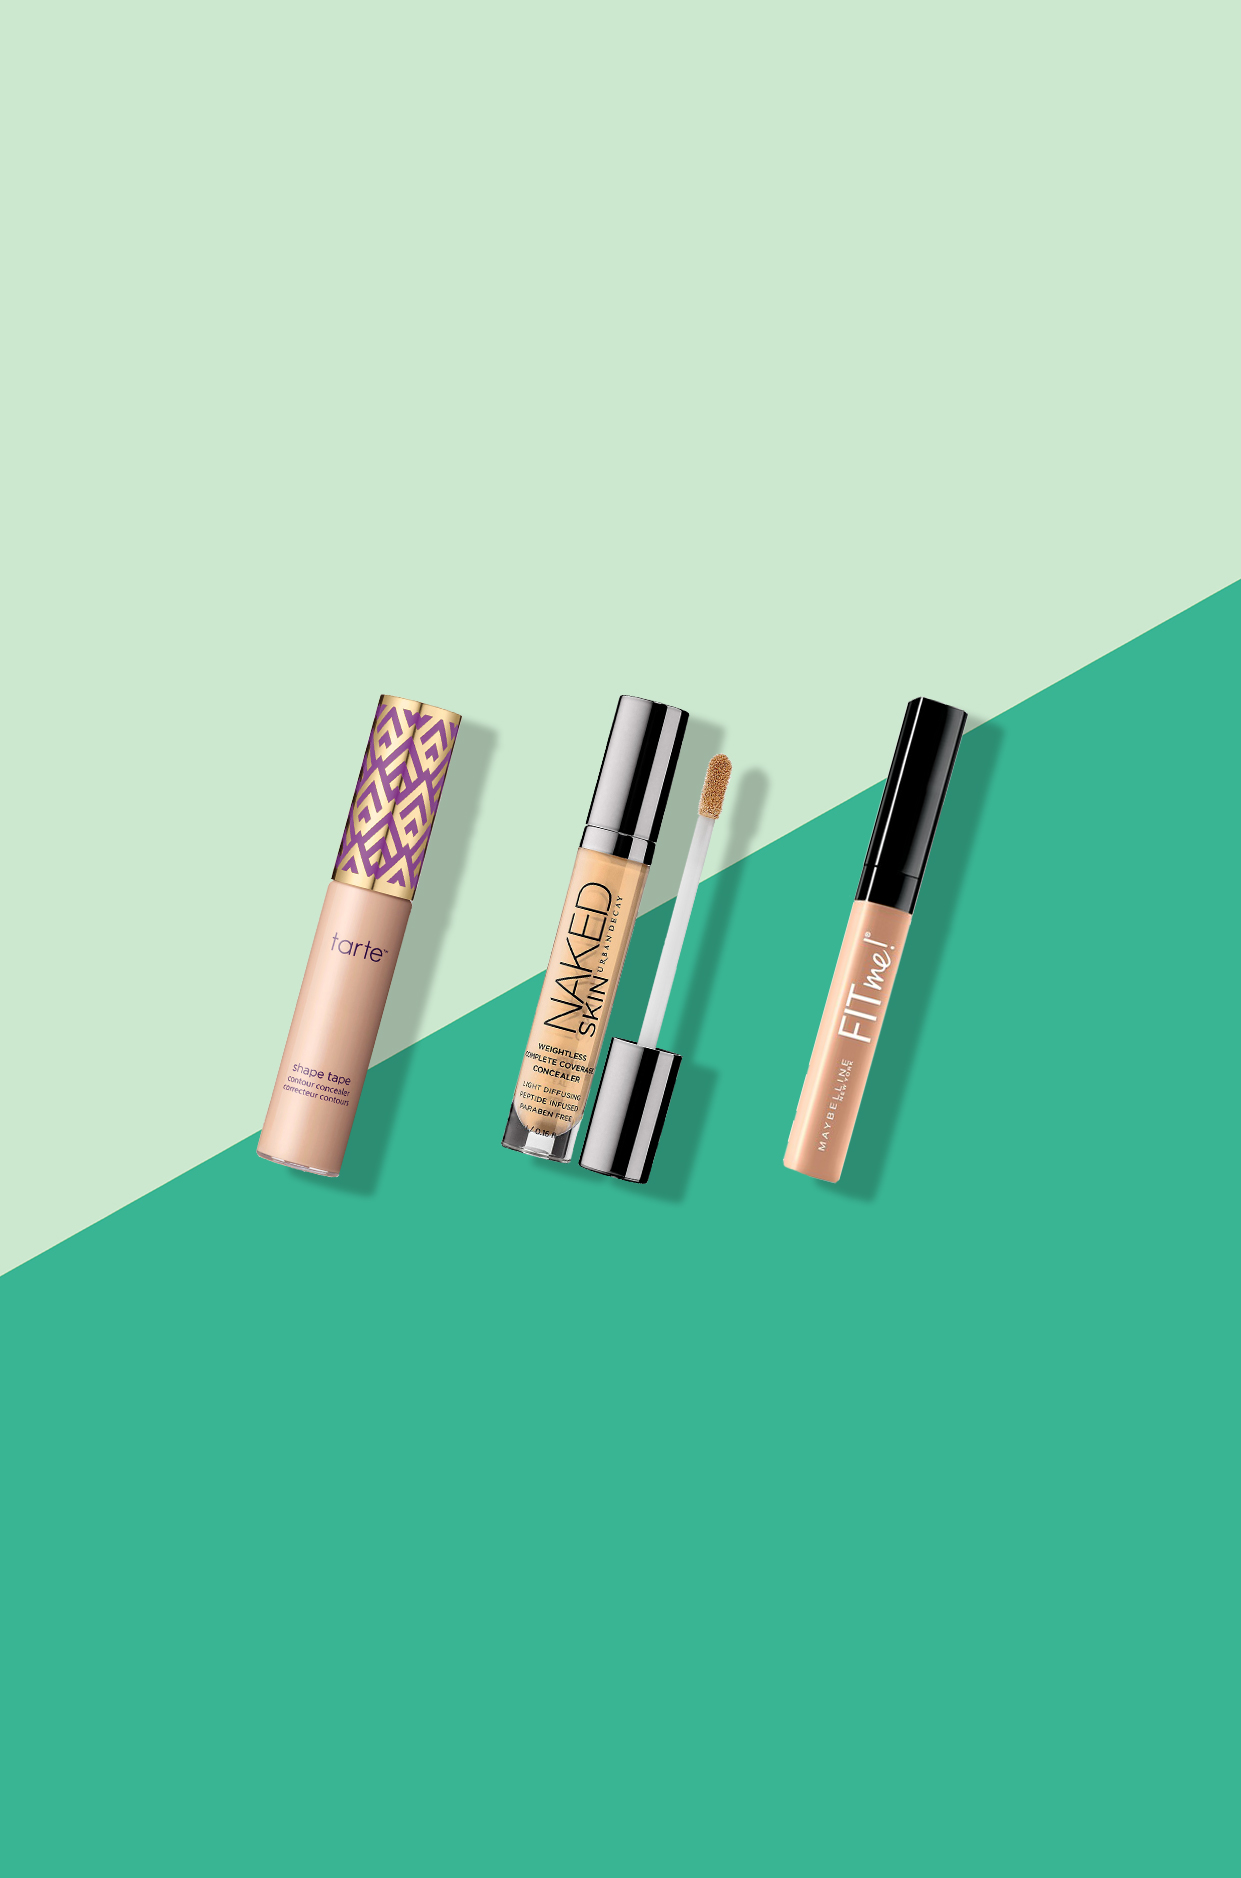 Best Concealers For Acne Scars – Our Top 10 forecasting